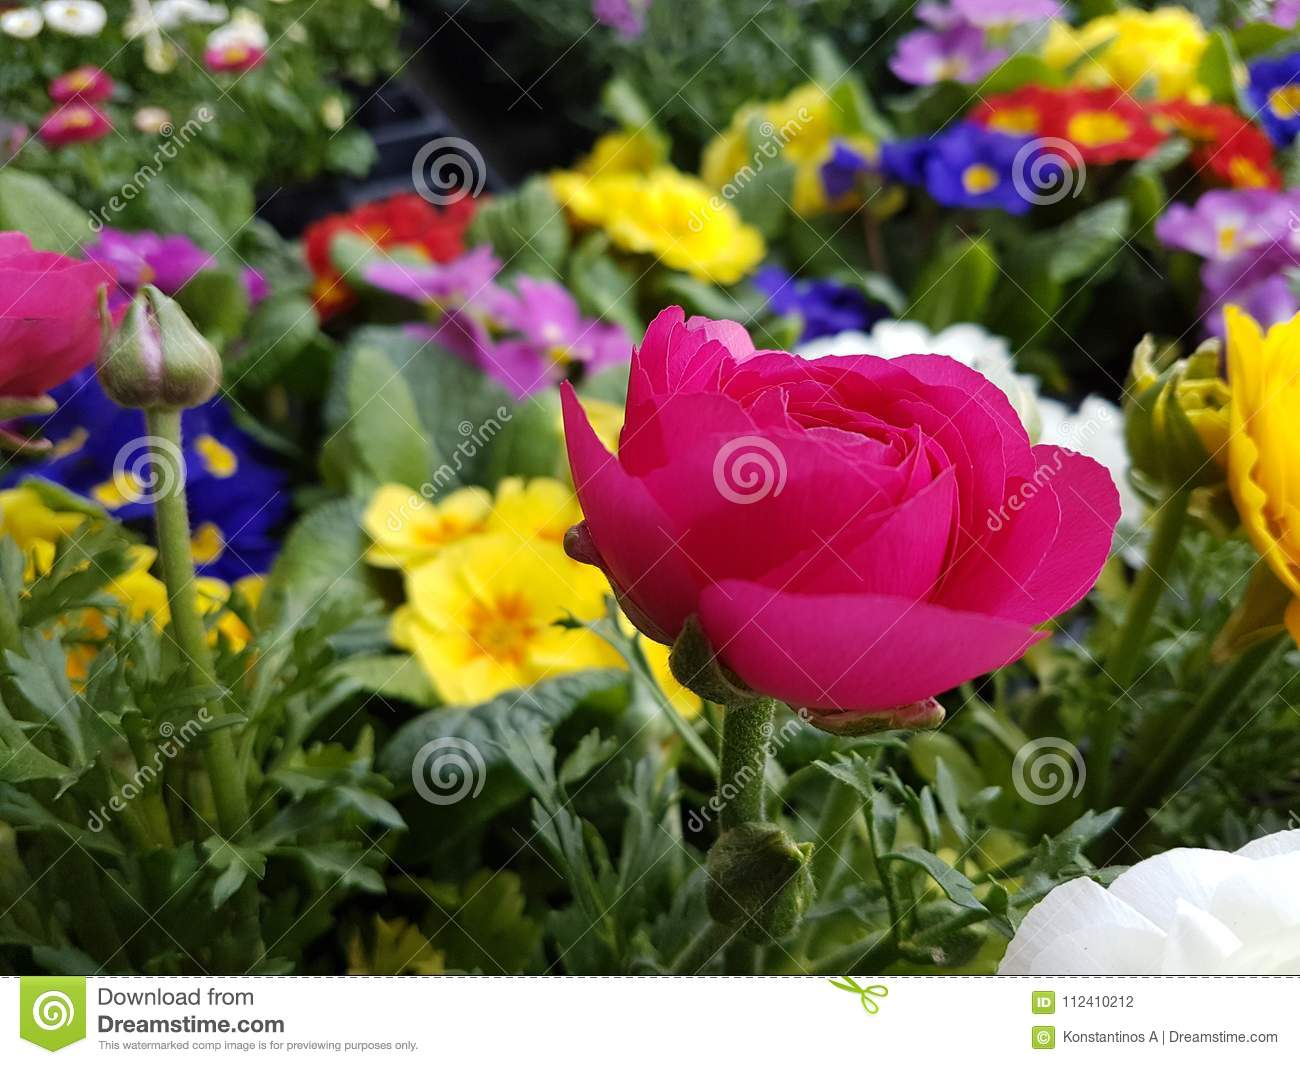 Pansy flower yellow pink spring background stock photo image of download pansy flower yellow pink spring background stock photo image of nature color mightylinksfo